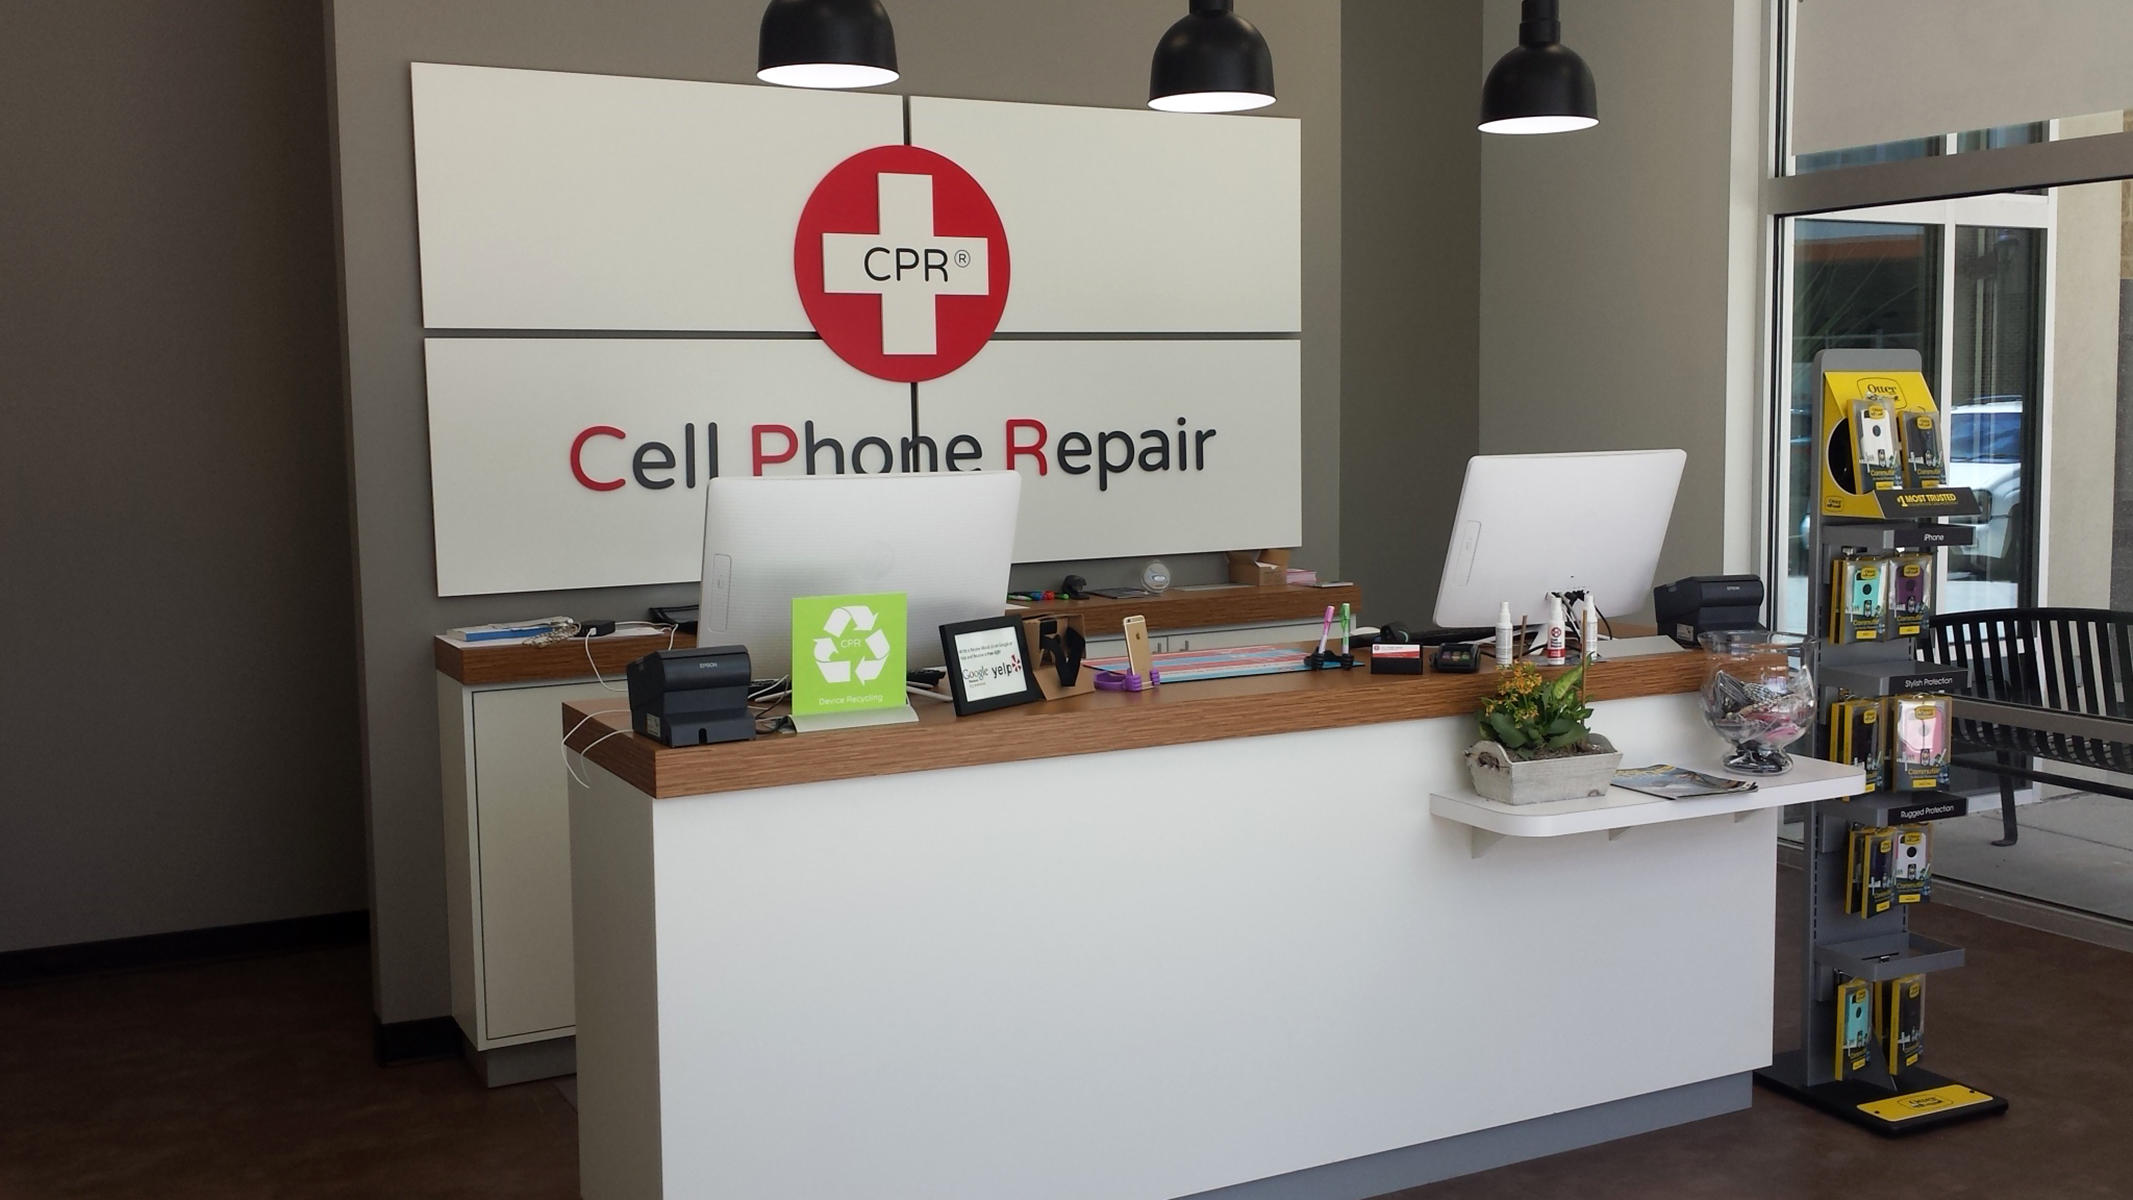 CPR Cell Phone Repair Morrisville - Cary image 2